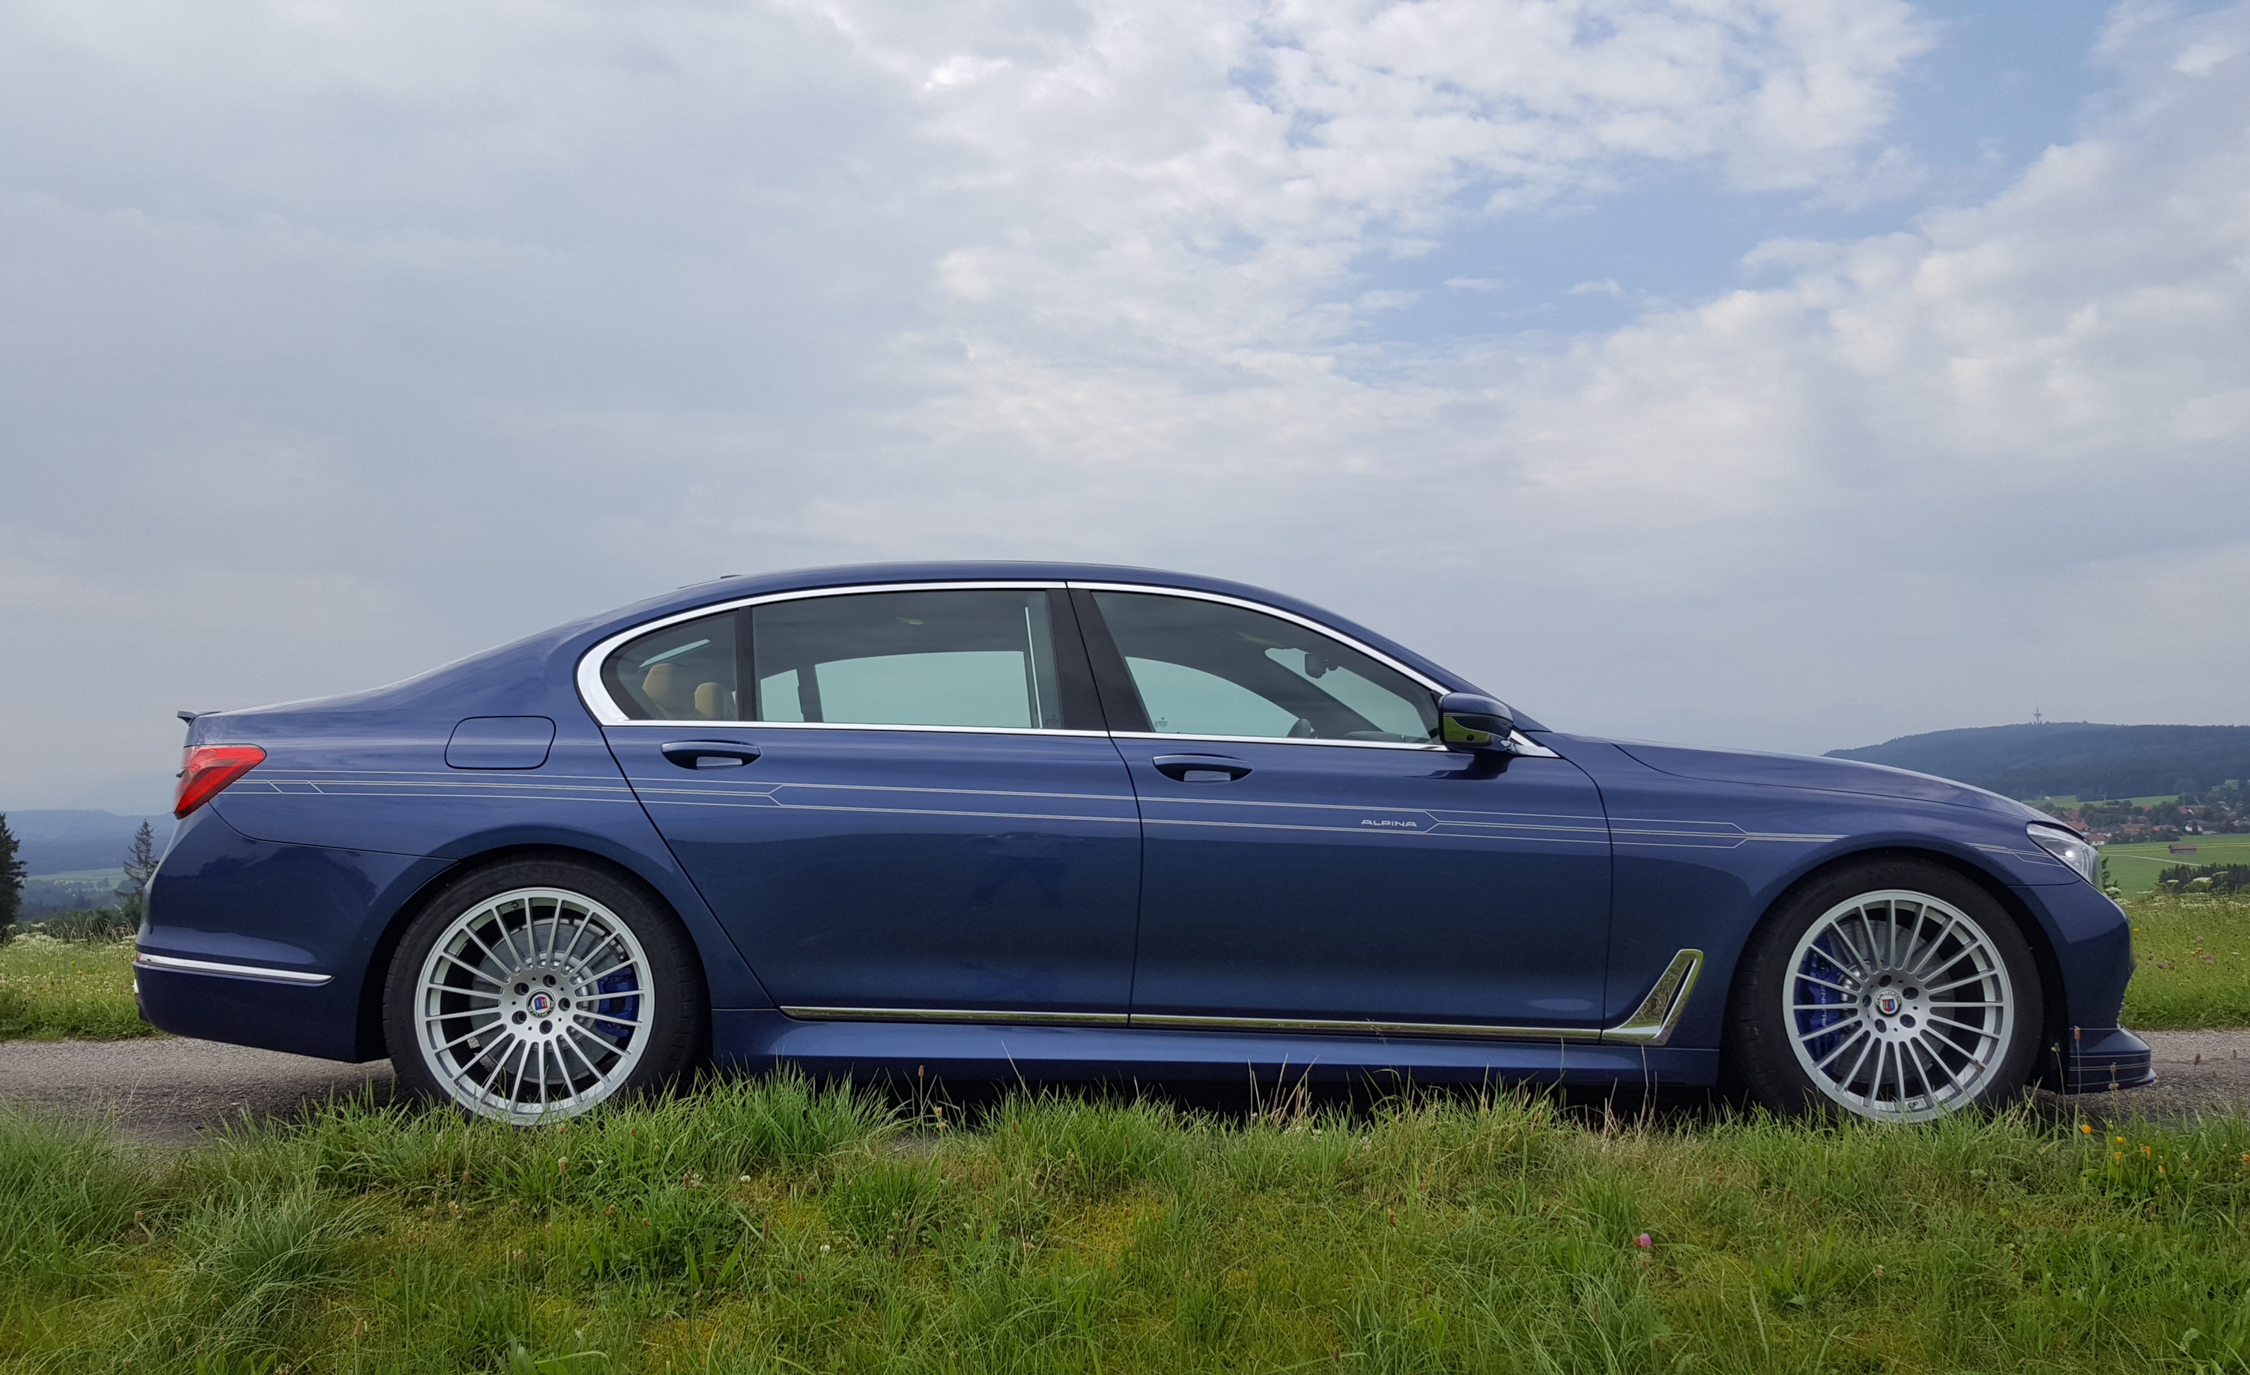 2017 BMW Alpina B7 Exterior Side Profile (Photo 11 of 45)